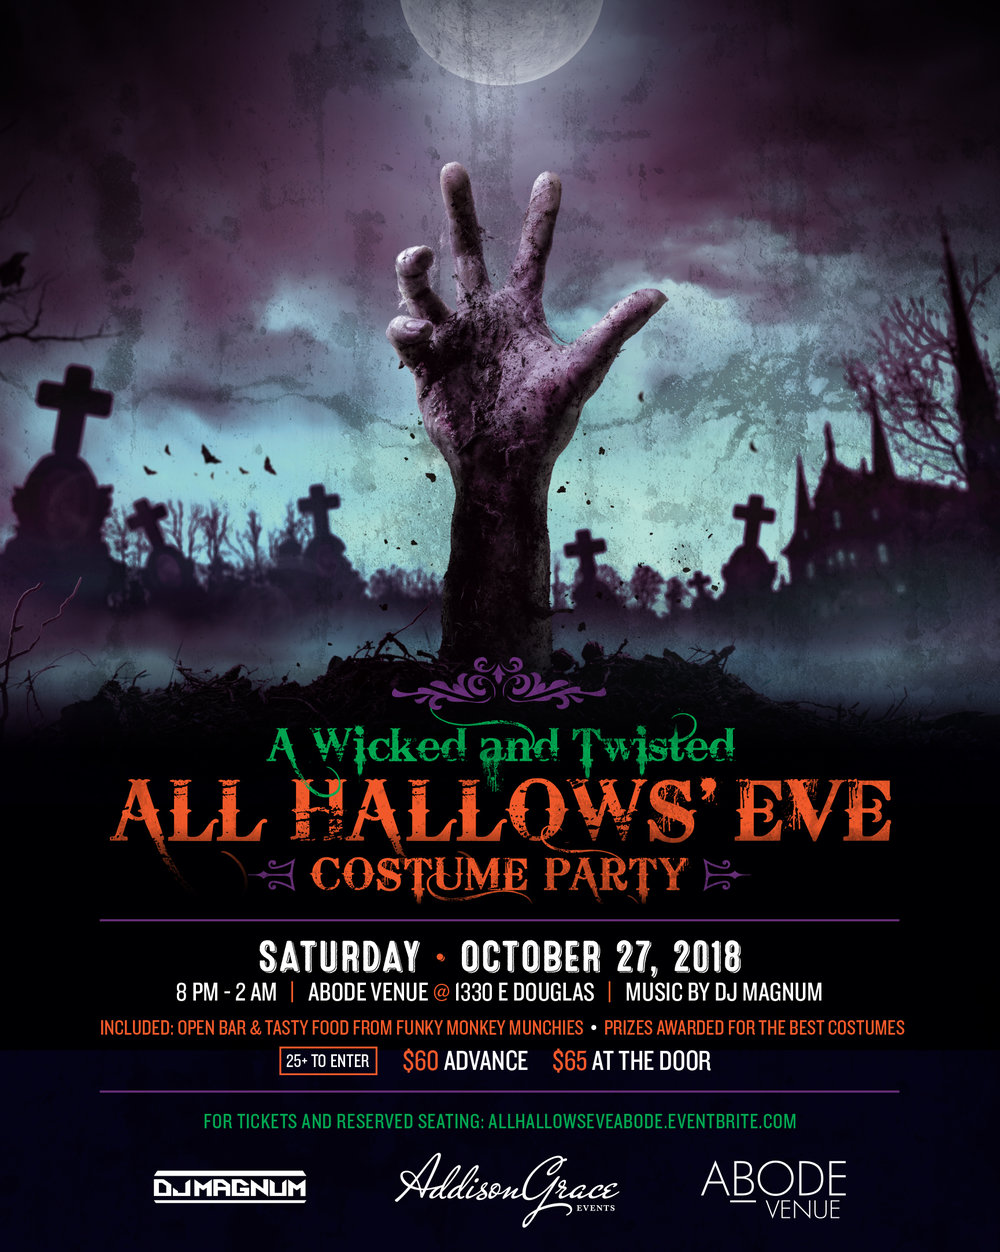 VISIT    https://allhallowseveabode.eventbrite.com    to purchase tickets!